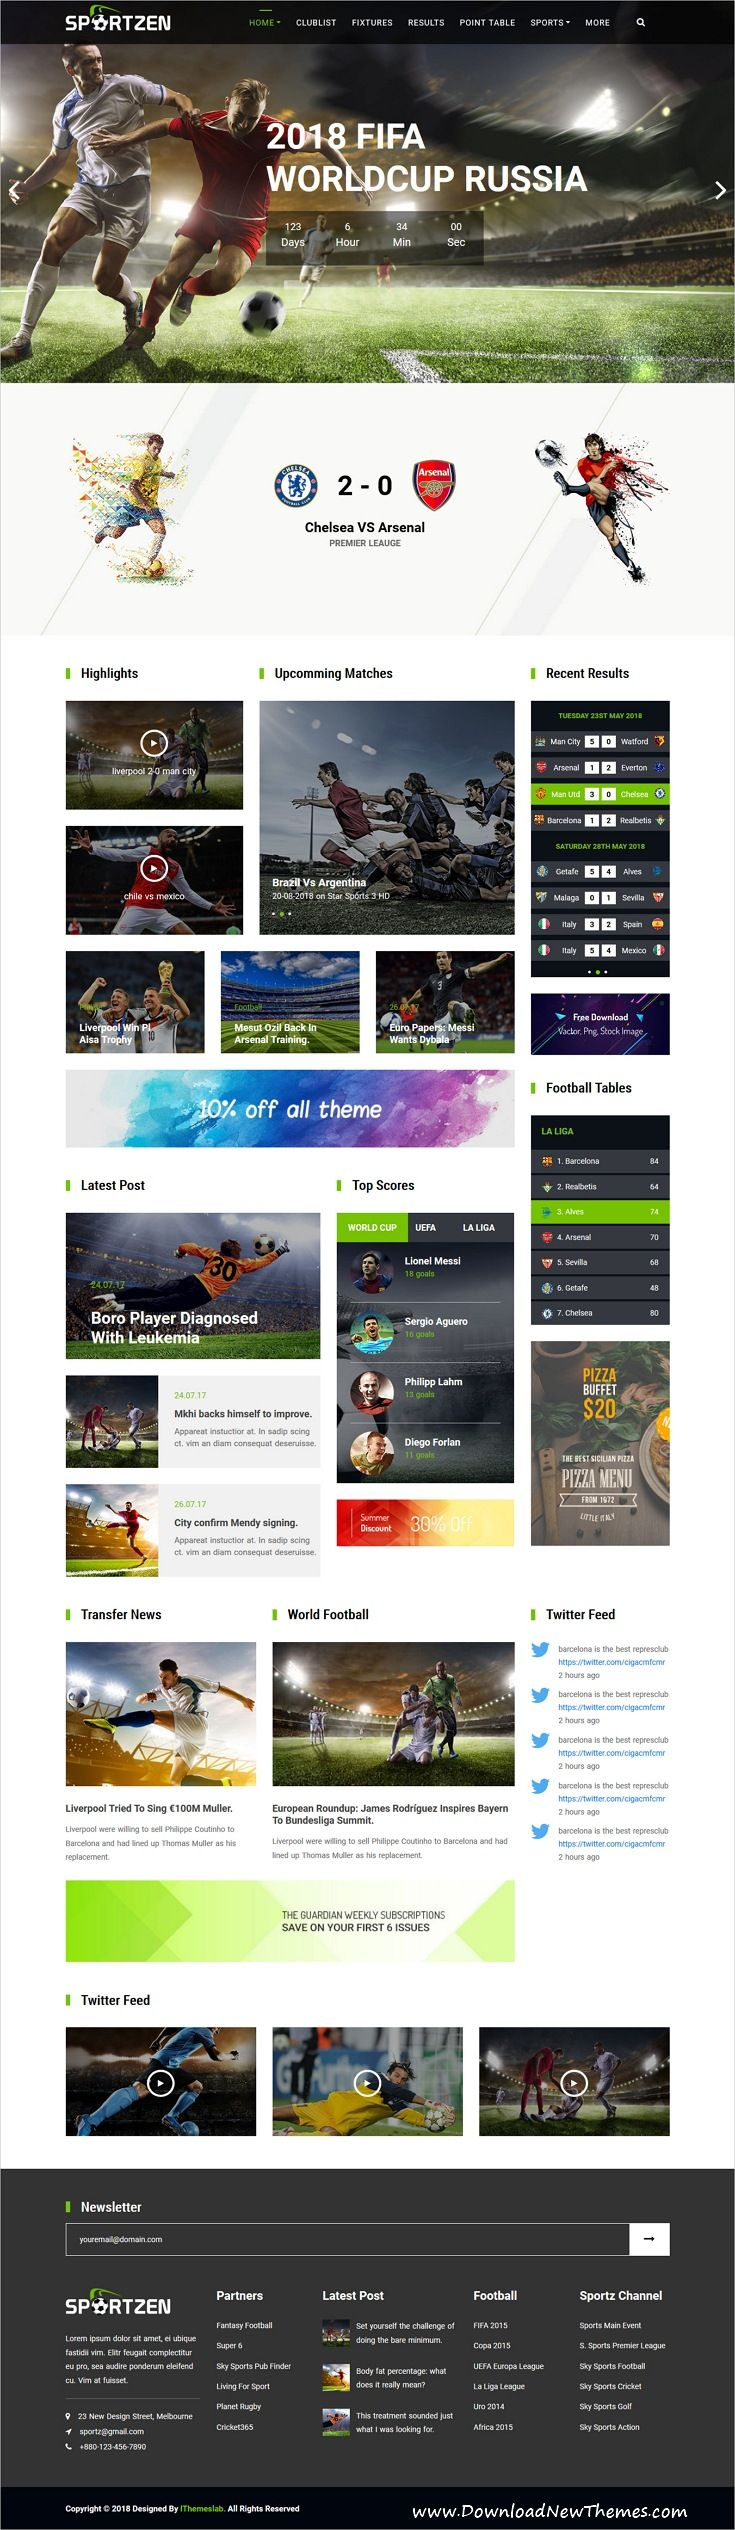 Sportzen   Sports Club U0026 Magazine HTML Template | Web Design Ideas |  Pinterest | Magazine Website, Sports Clubs And Template